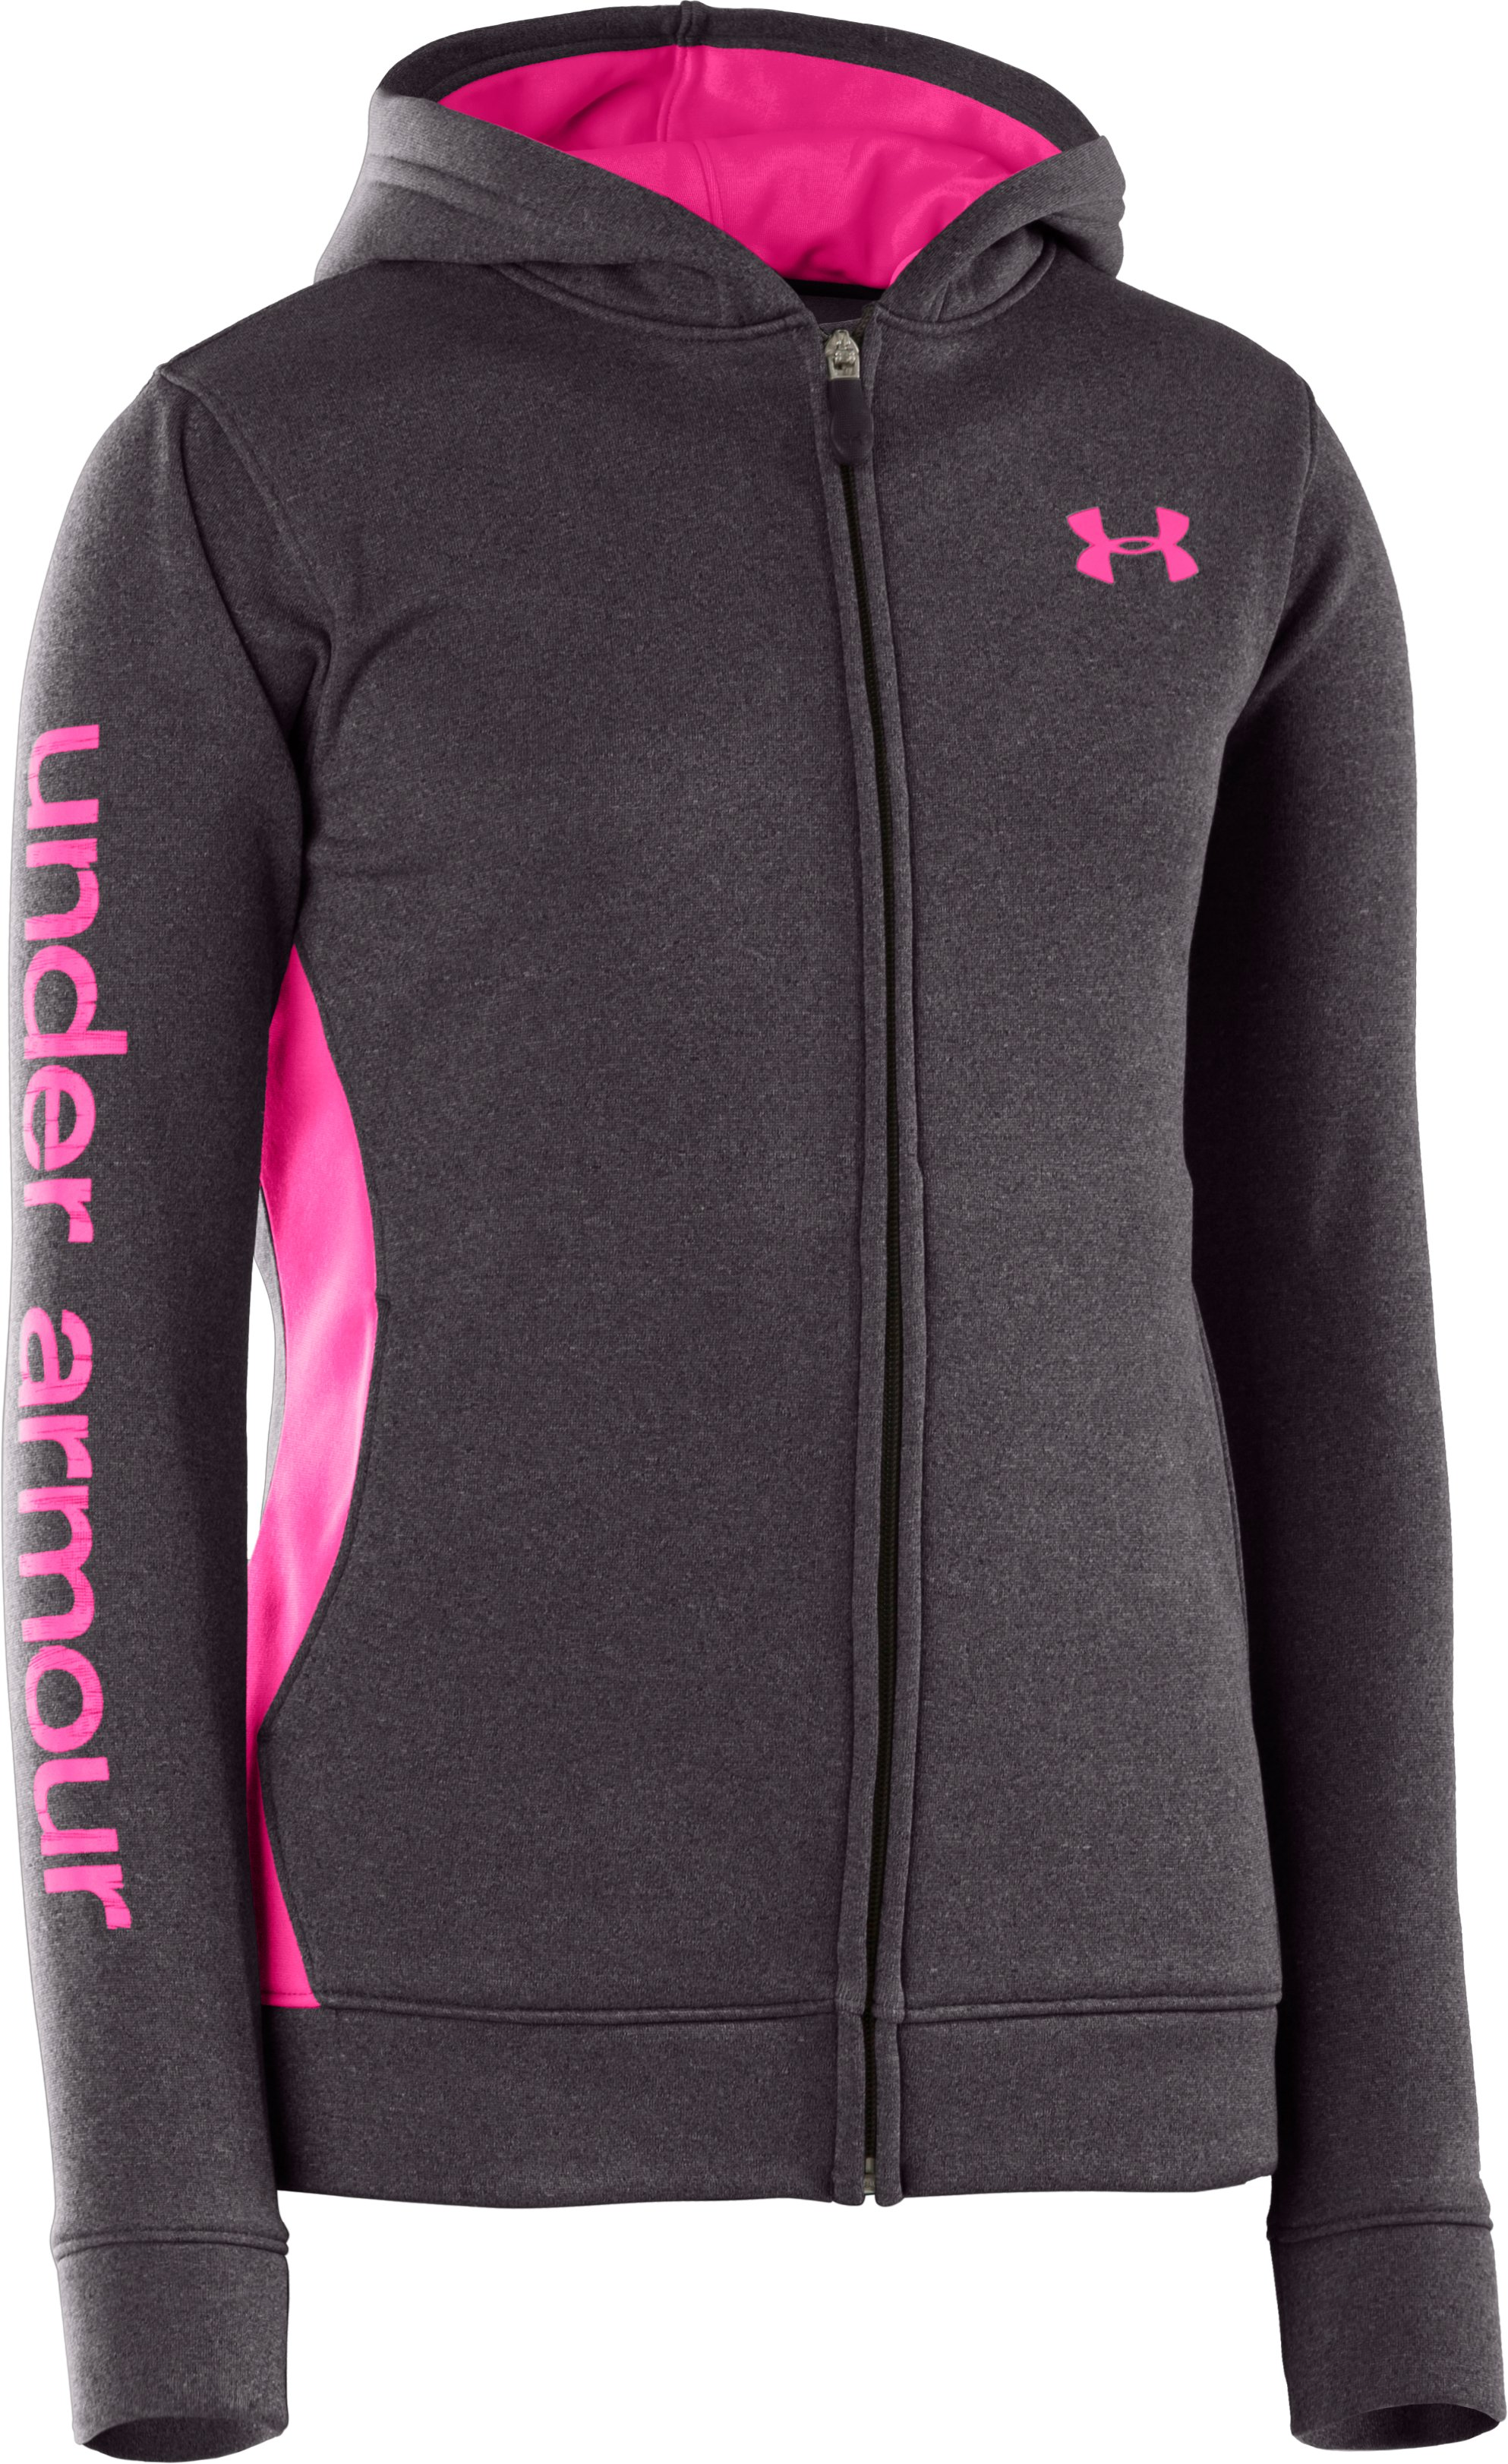 Girls' Armour® Fleece Full Zip Hoodie, Carbon Heather, zoomed image